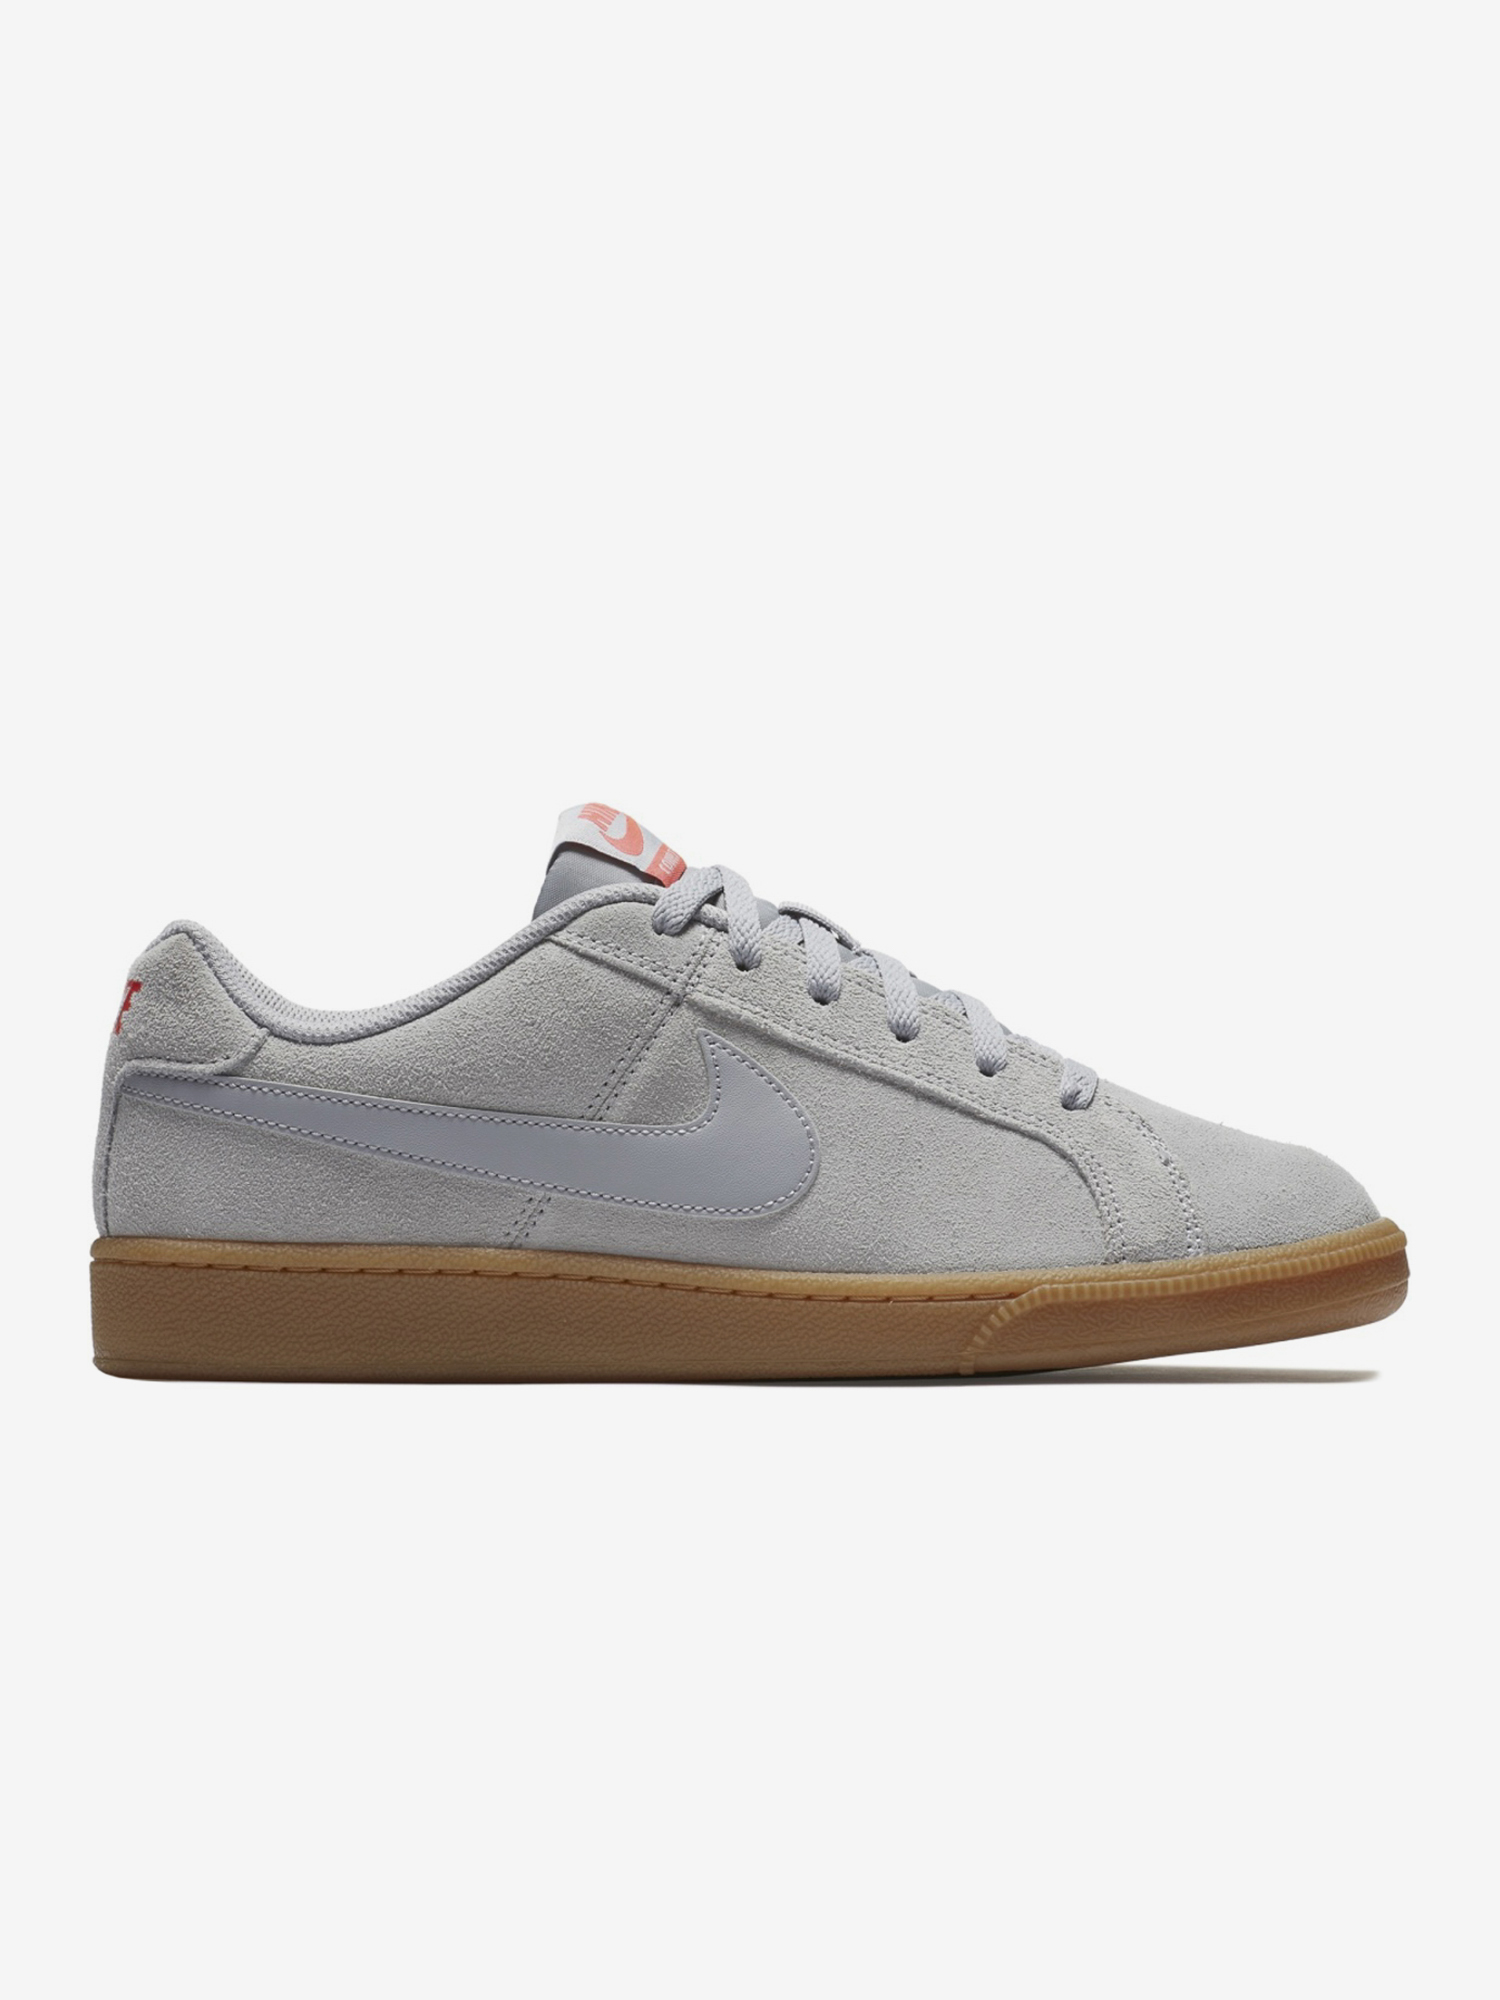 Boty Nike Court Royale Suede Šedá